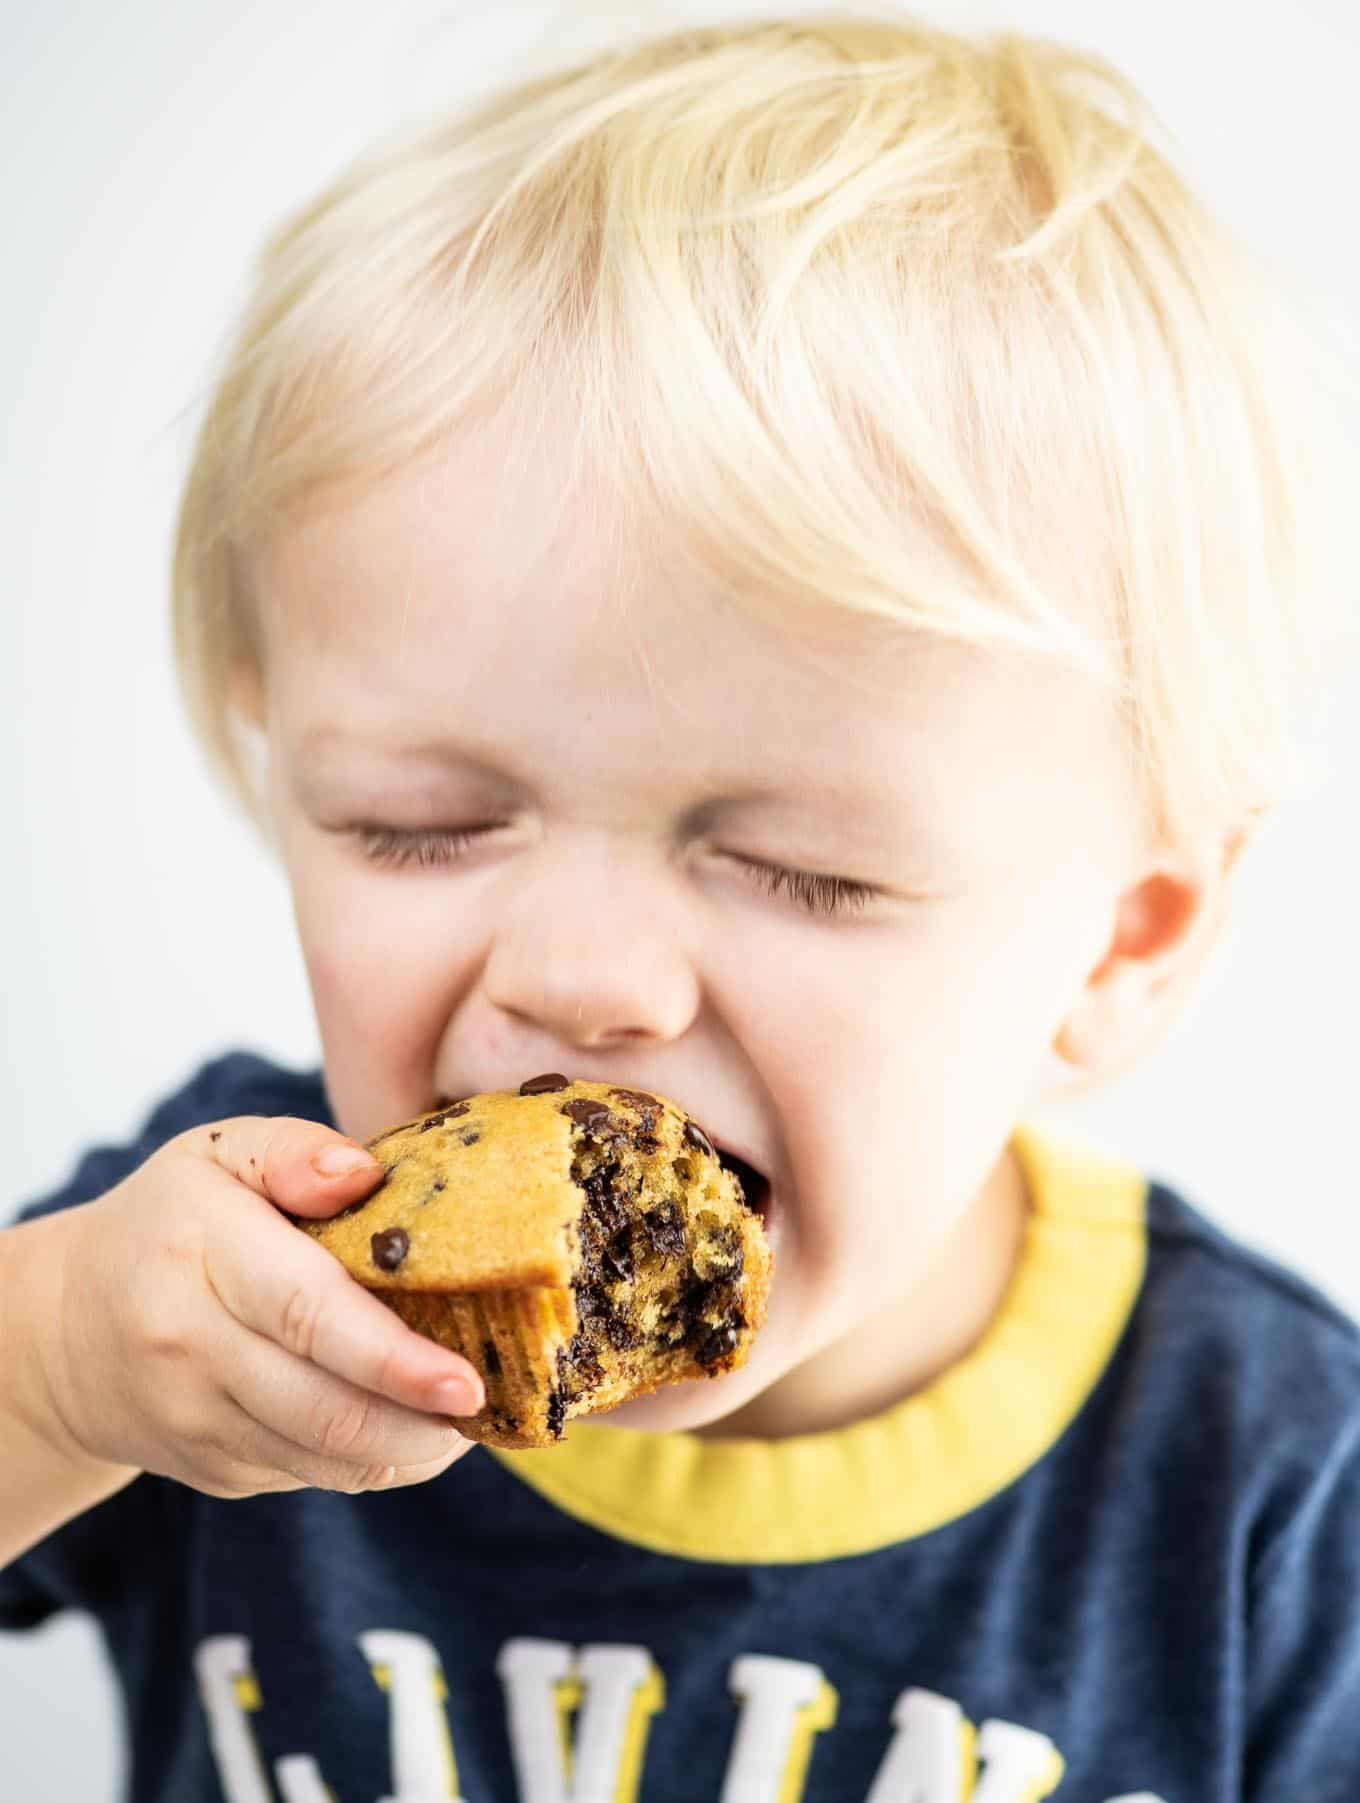 toddler taking a bite of a chocolate chip muffin